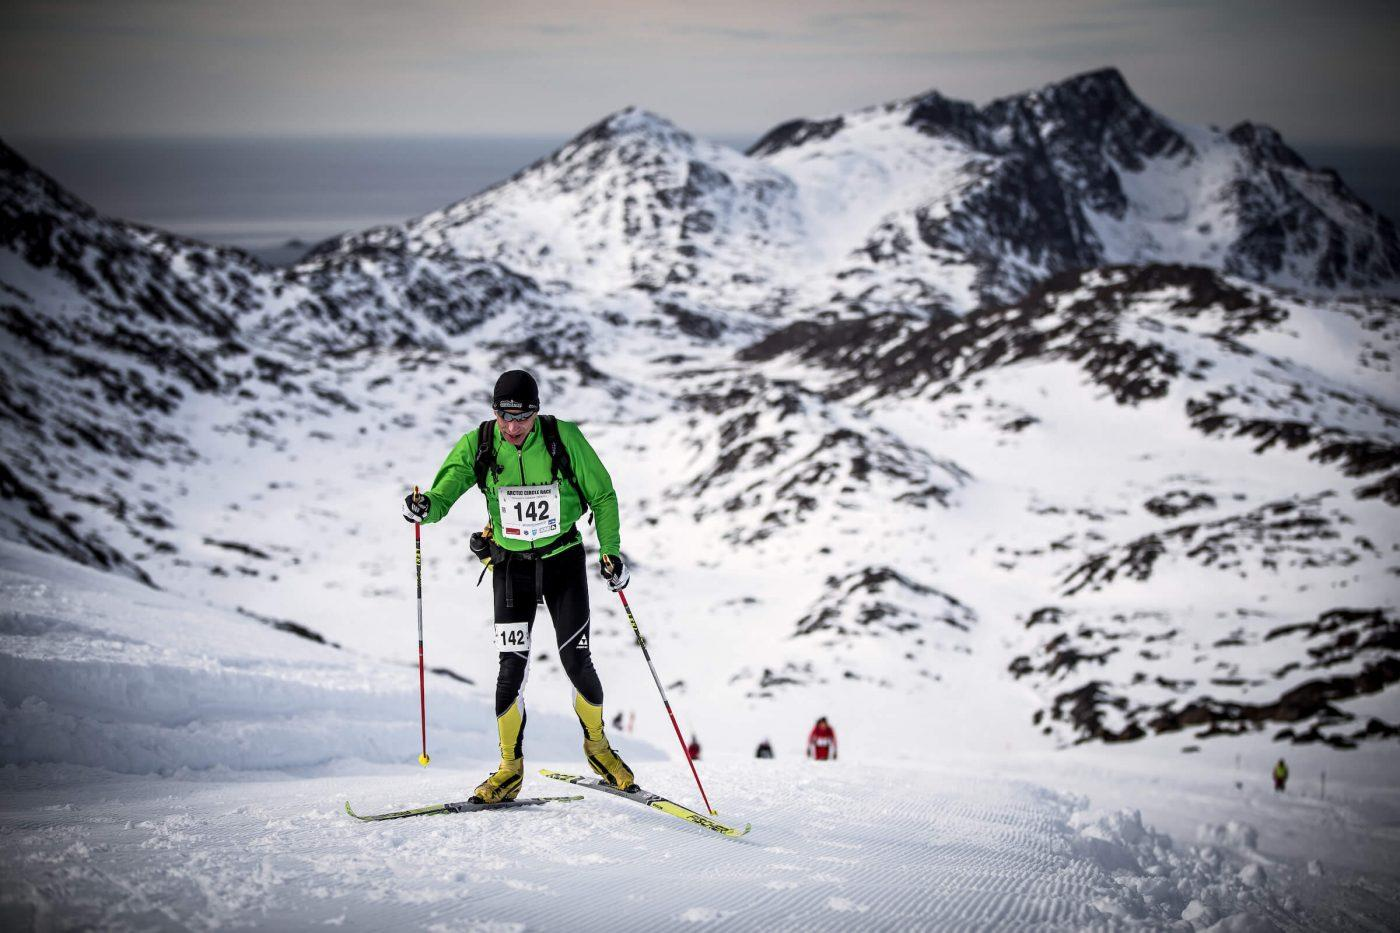 Arctic Circle Race Participant in Green. By Mads Pihl